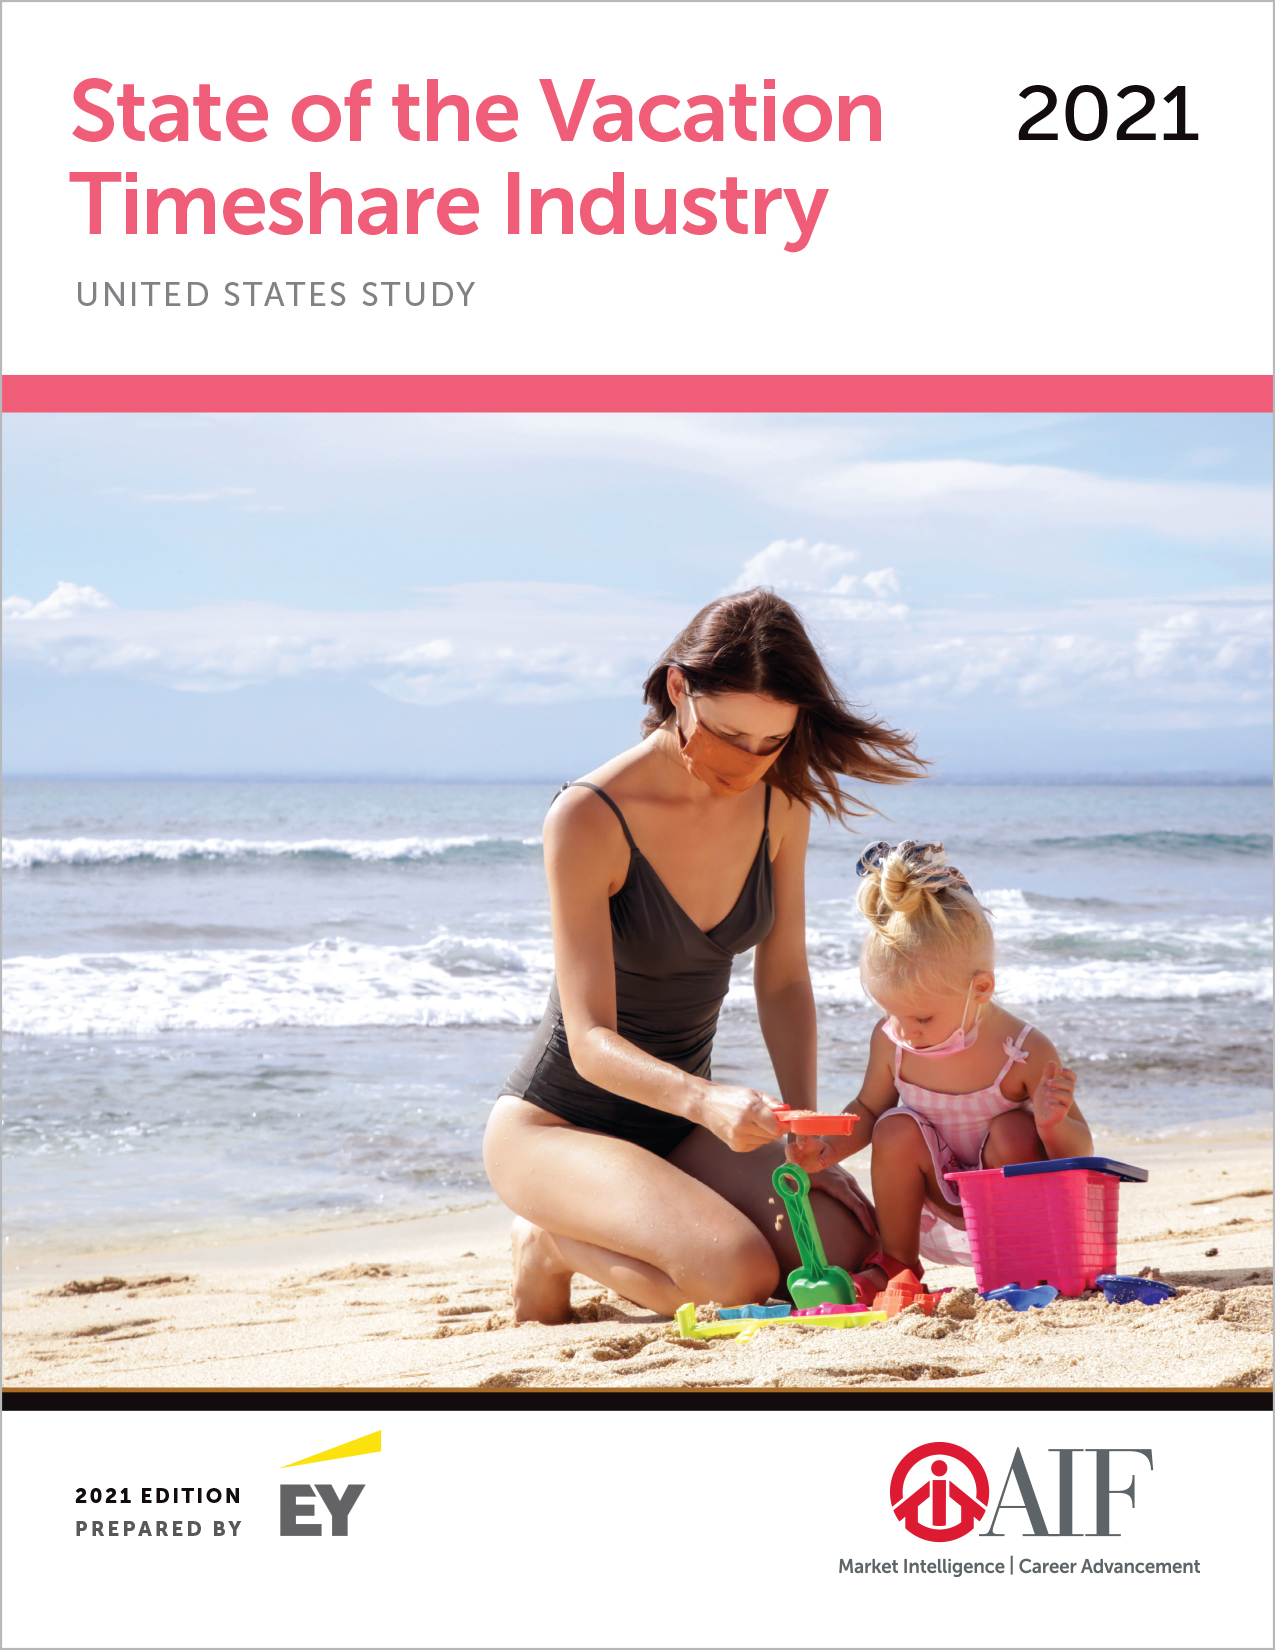 State of the Vacation Timeshare Industry, 2021 Ed. Full Report